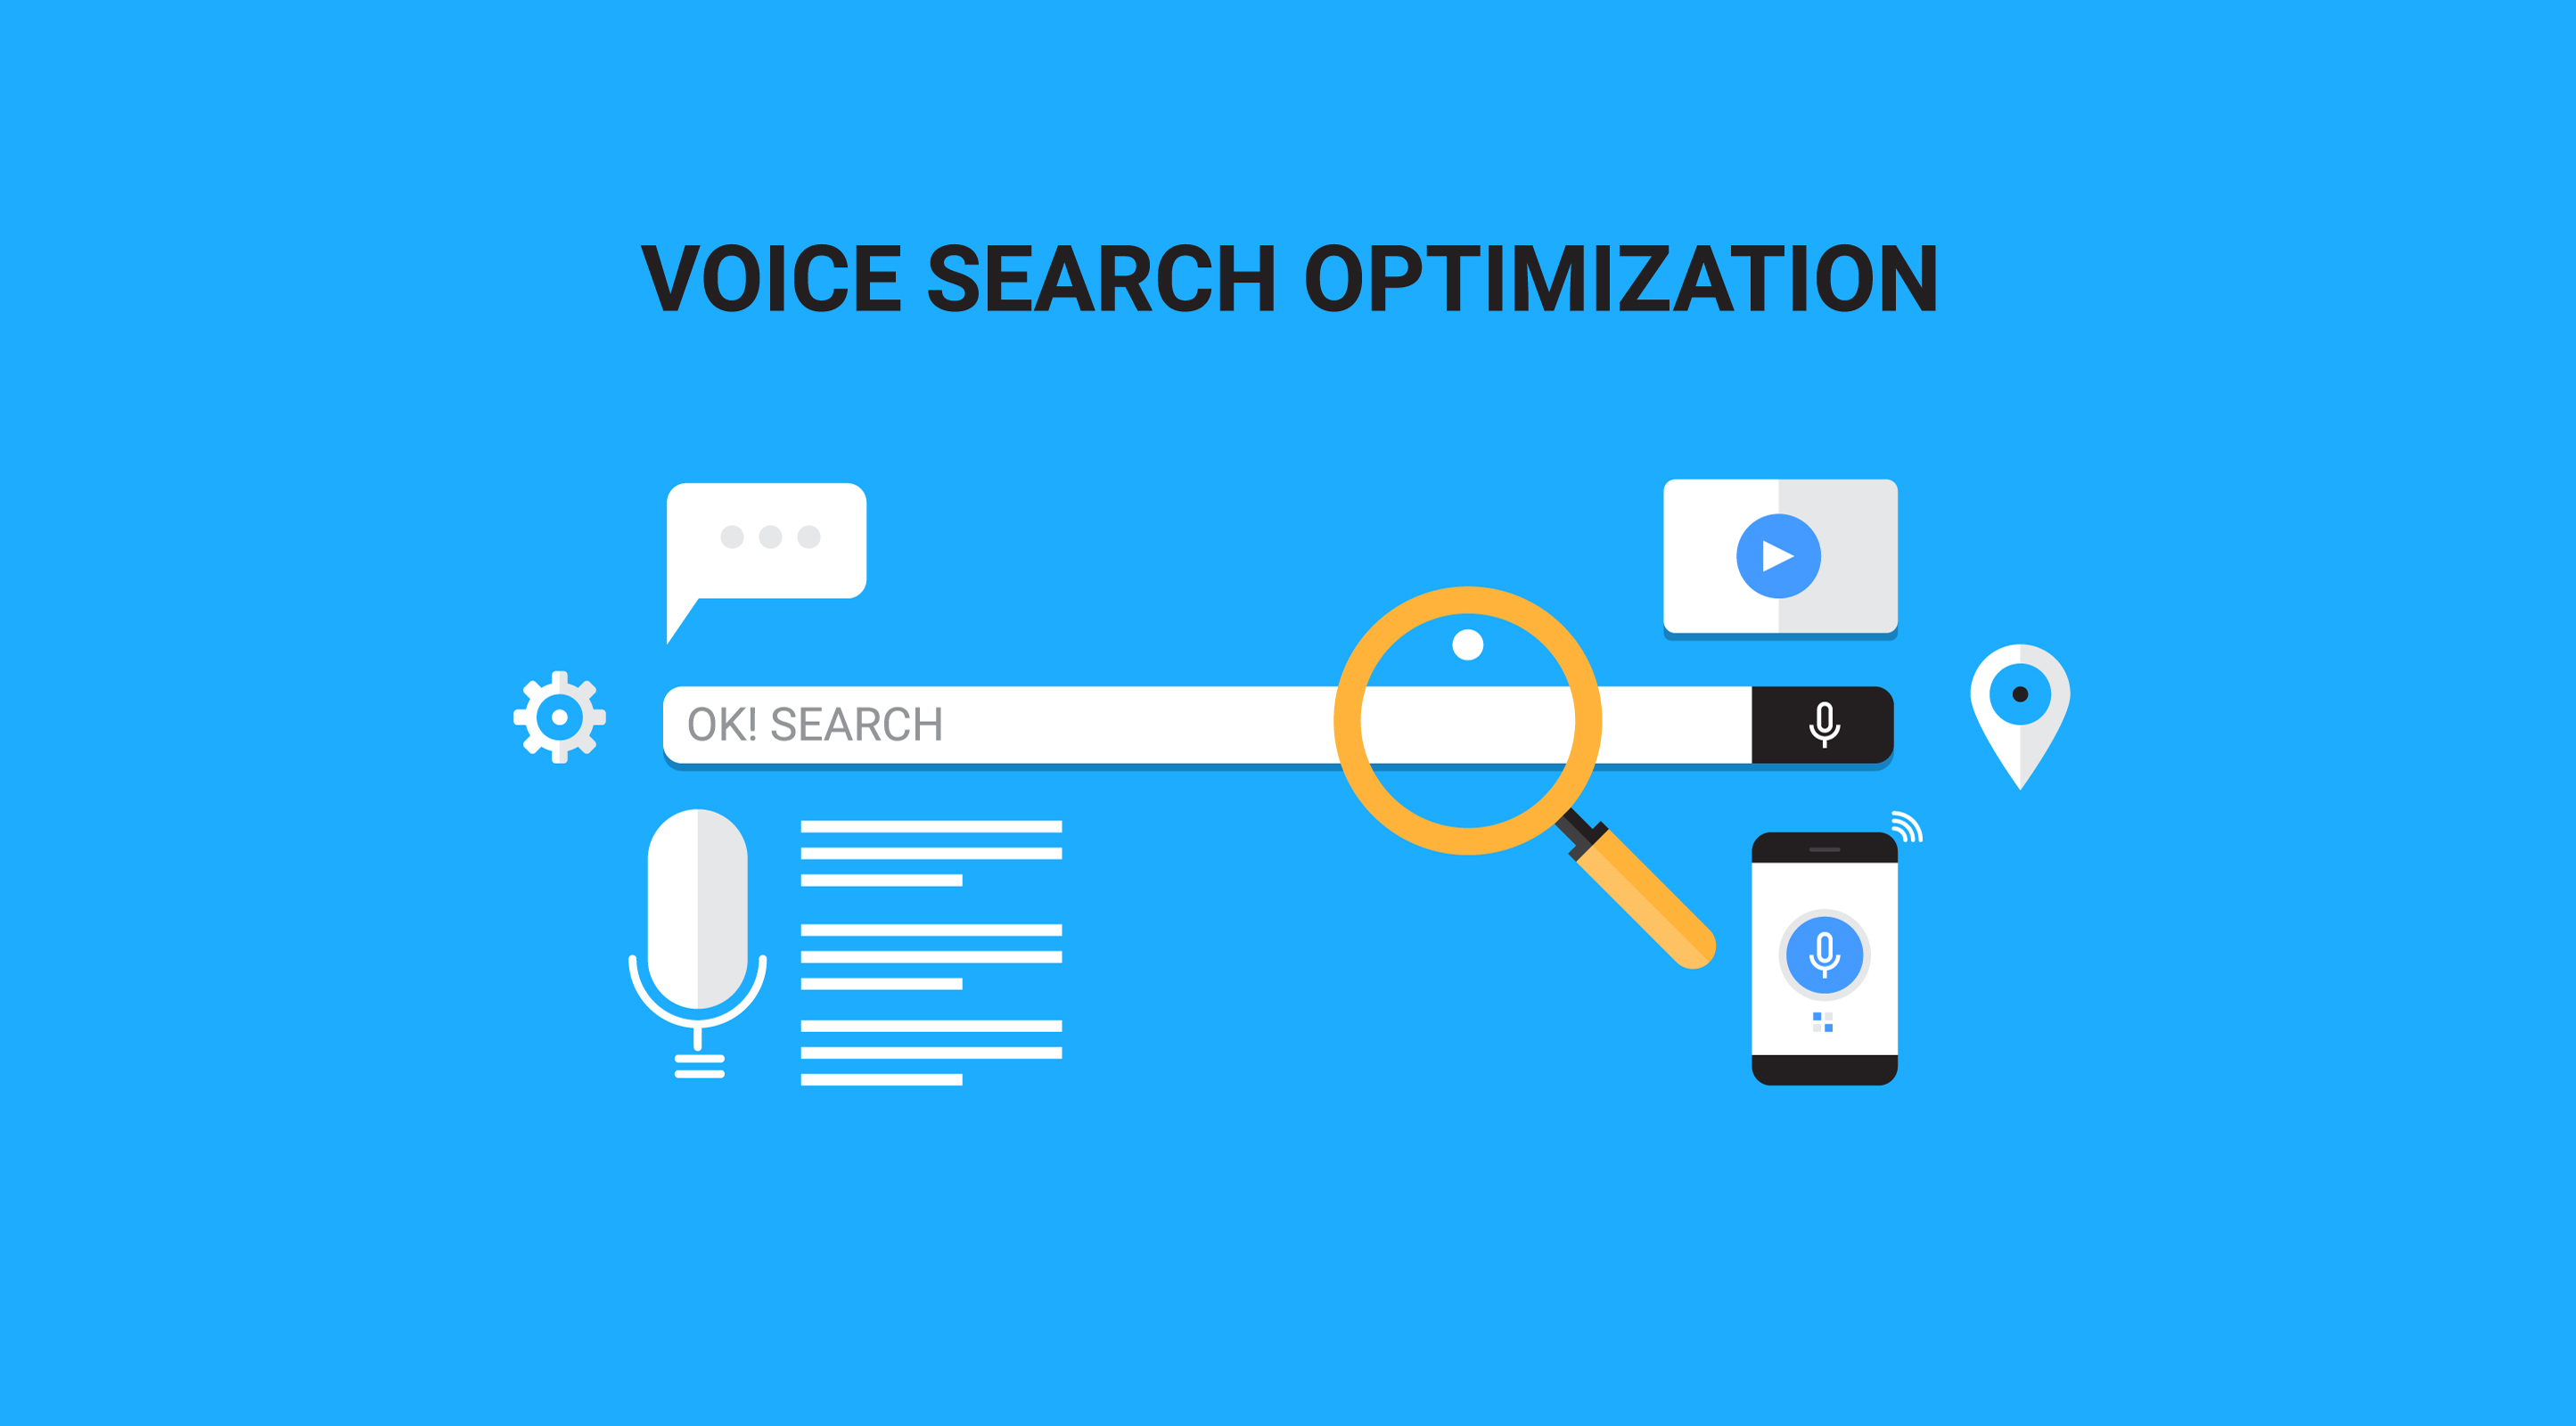 voice search optimization flat vector banner illustration with icons-img-blog